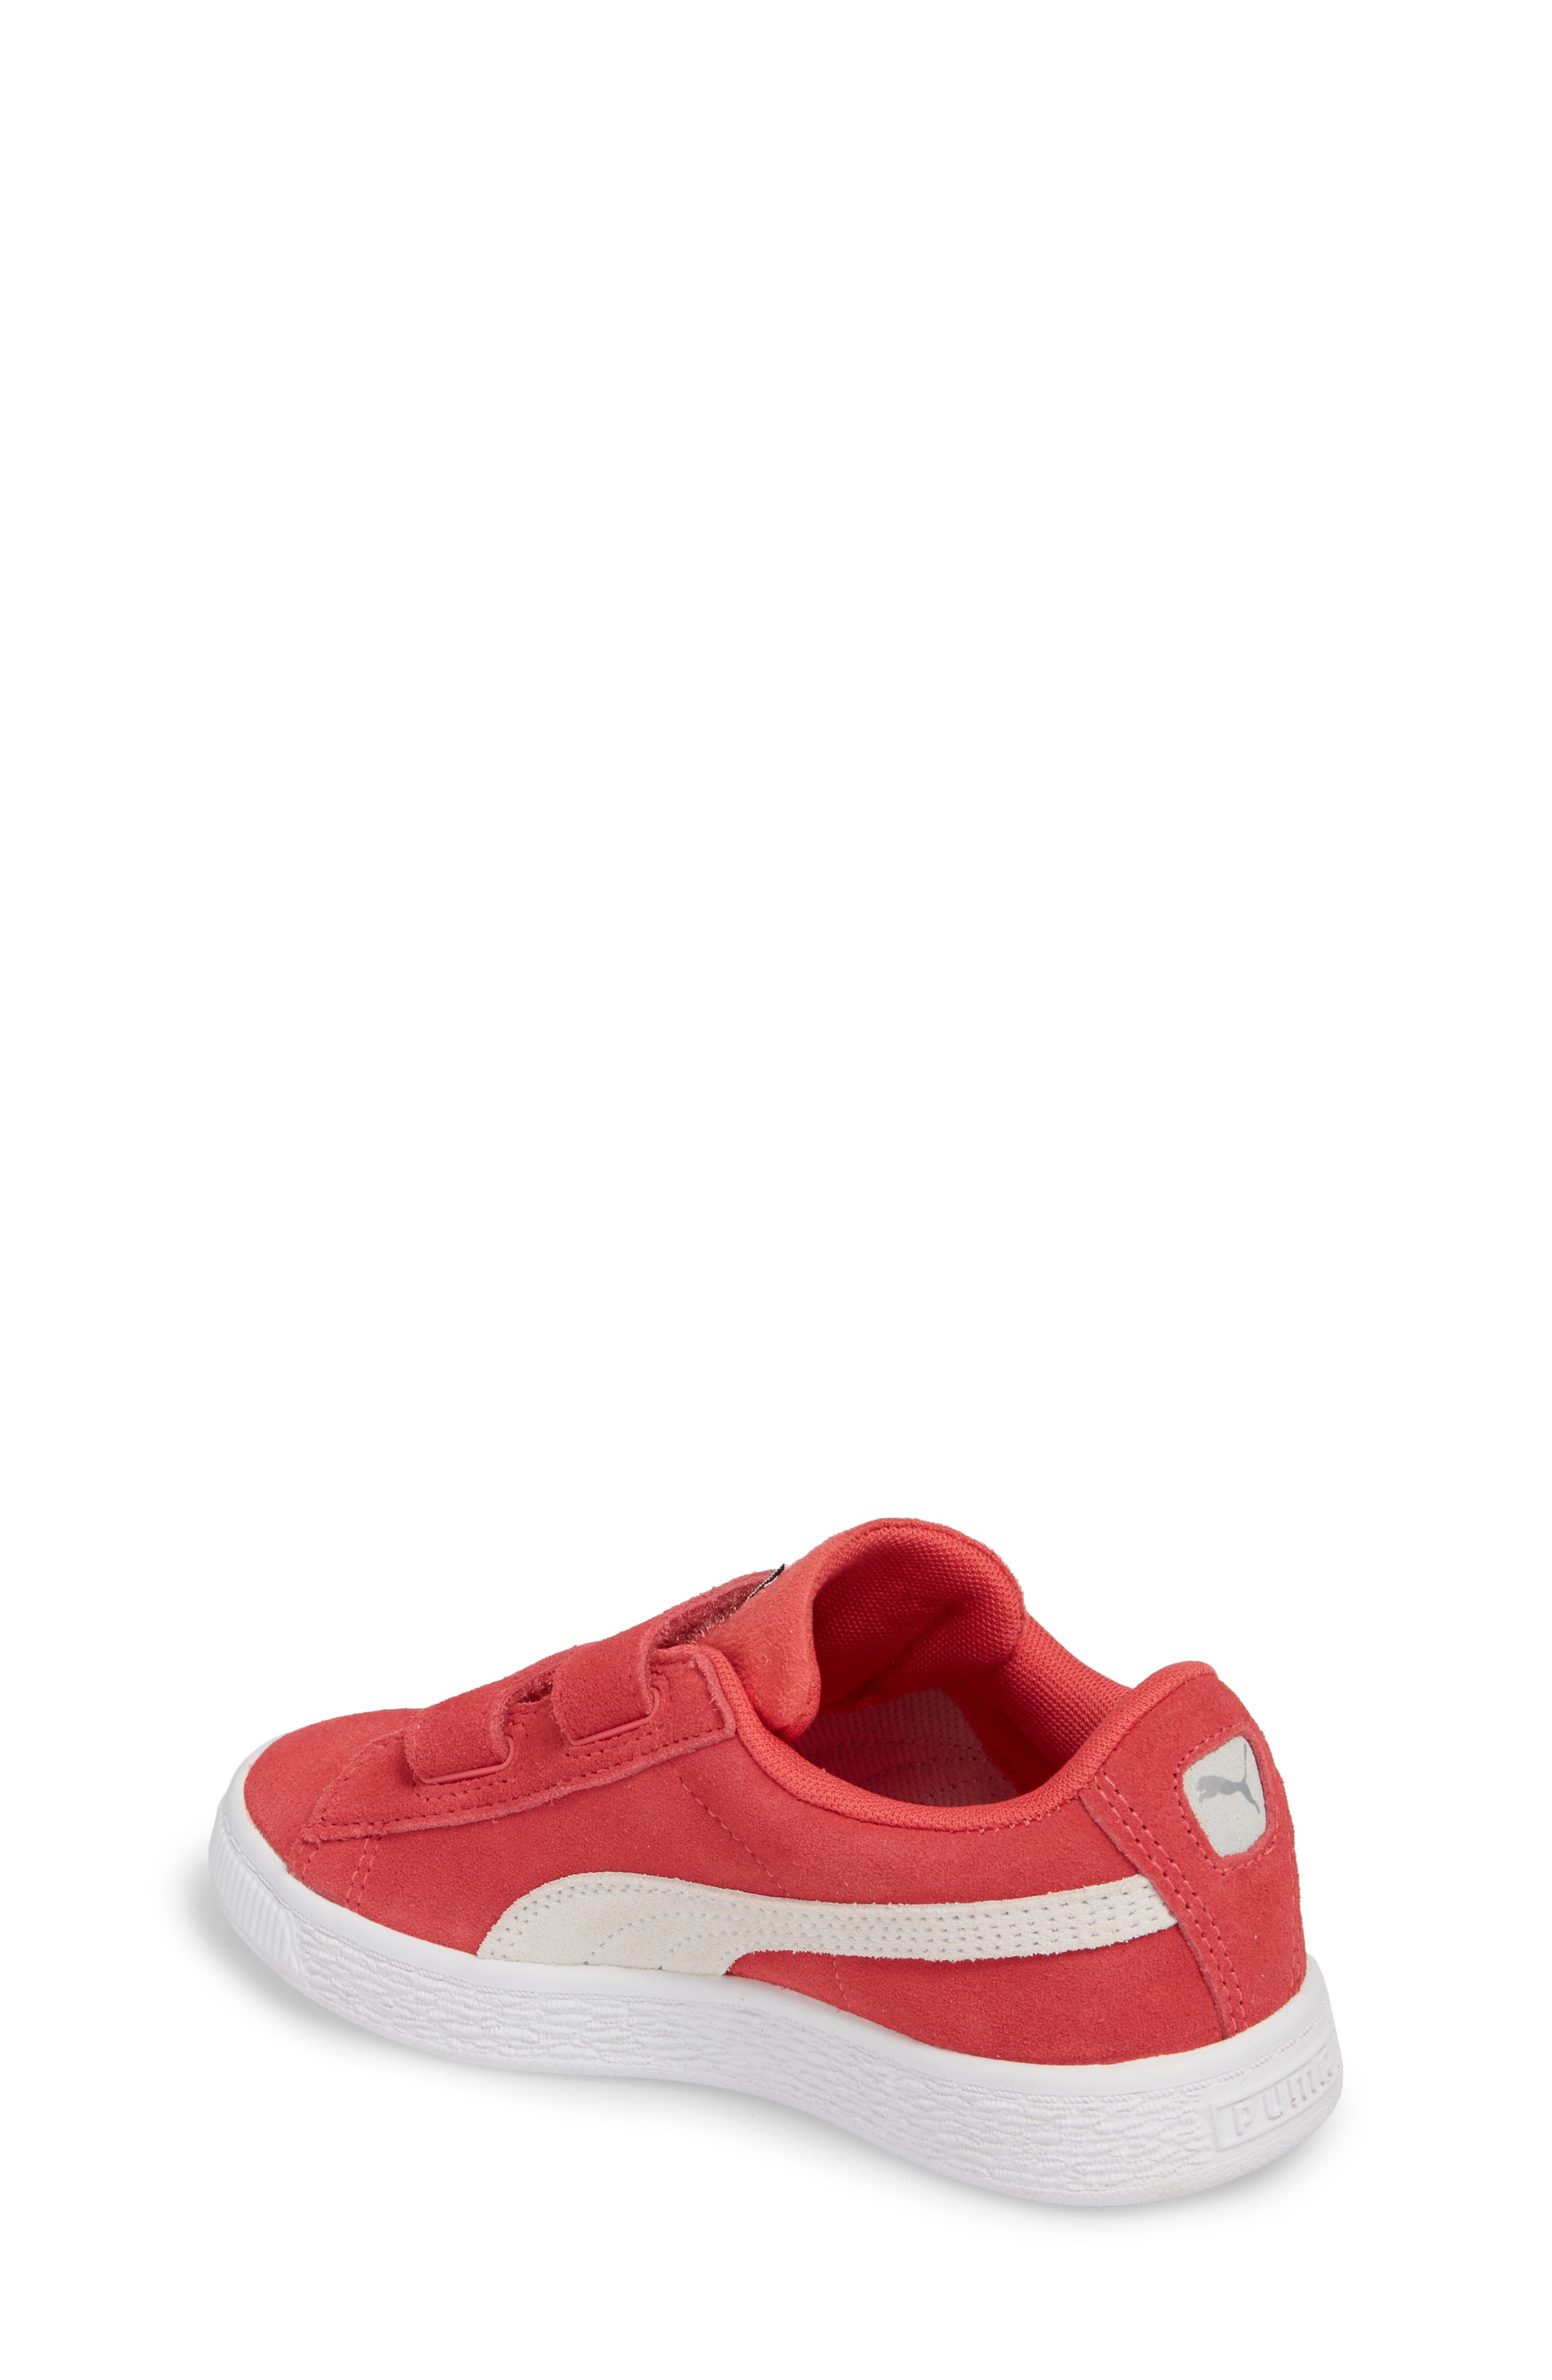 Suede Classic Sneaker,                             Alternate thumbnail 2, color,                             PARADISE PINK/ PUMA WHITE